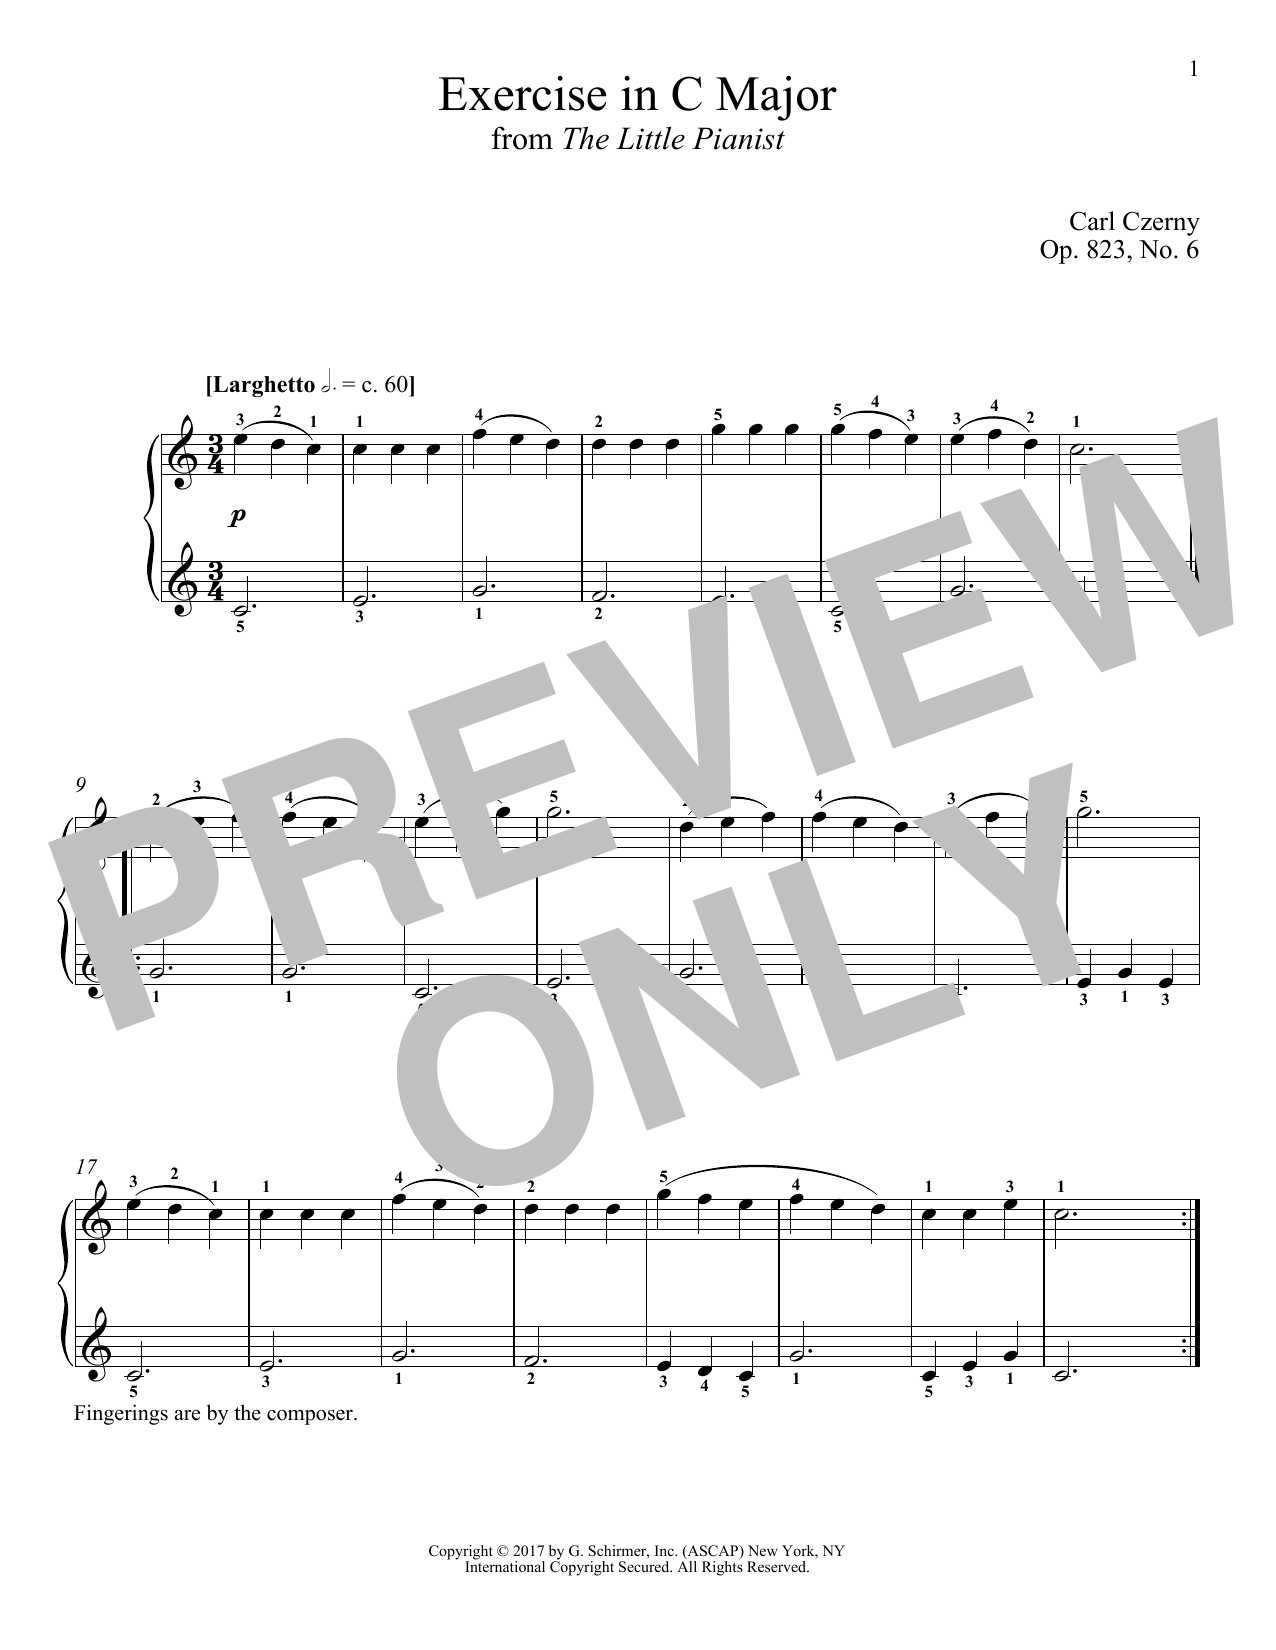 Carl Czerny Exercise in C Major, Op. 823, No. 6 sheet music notes and chords